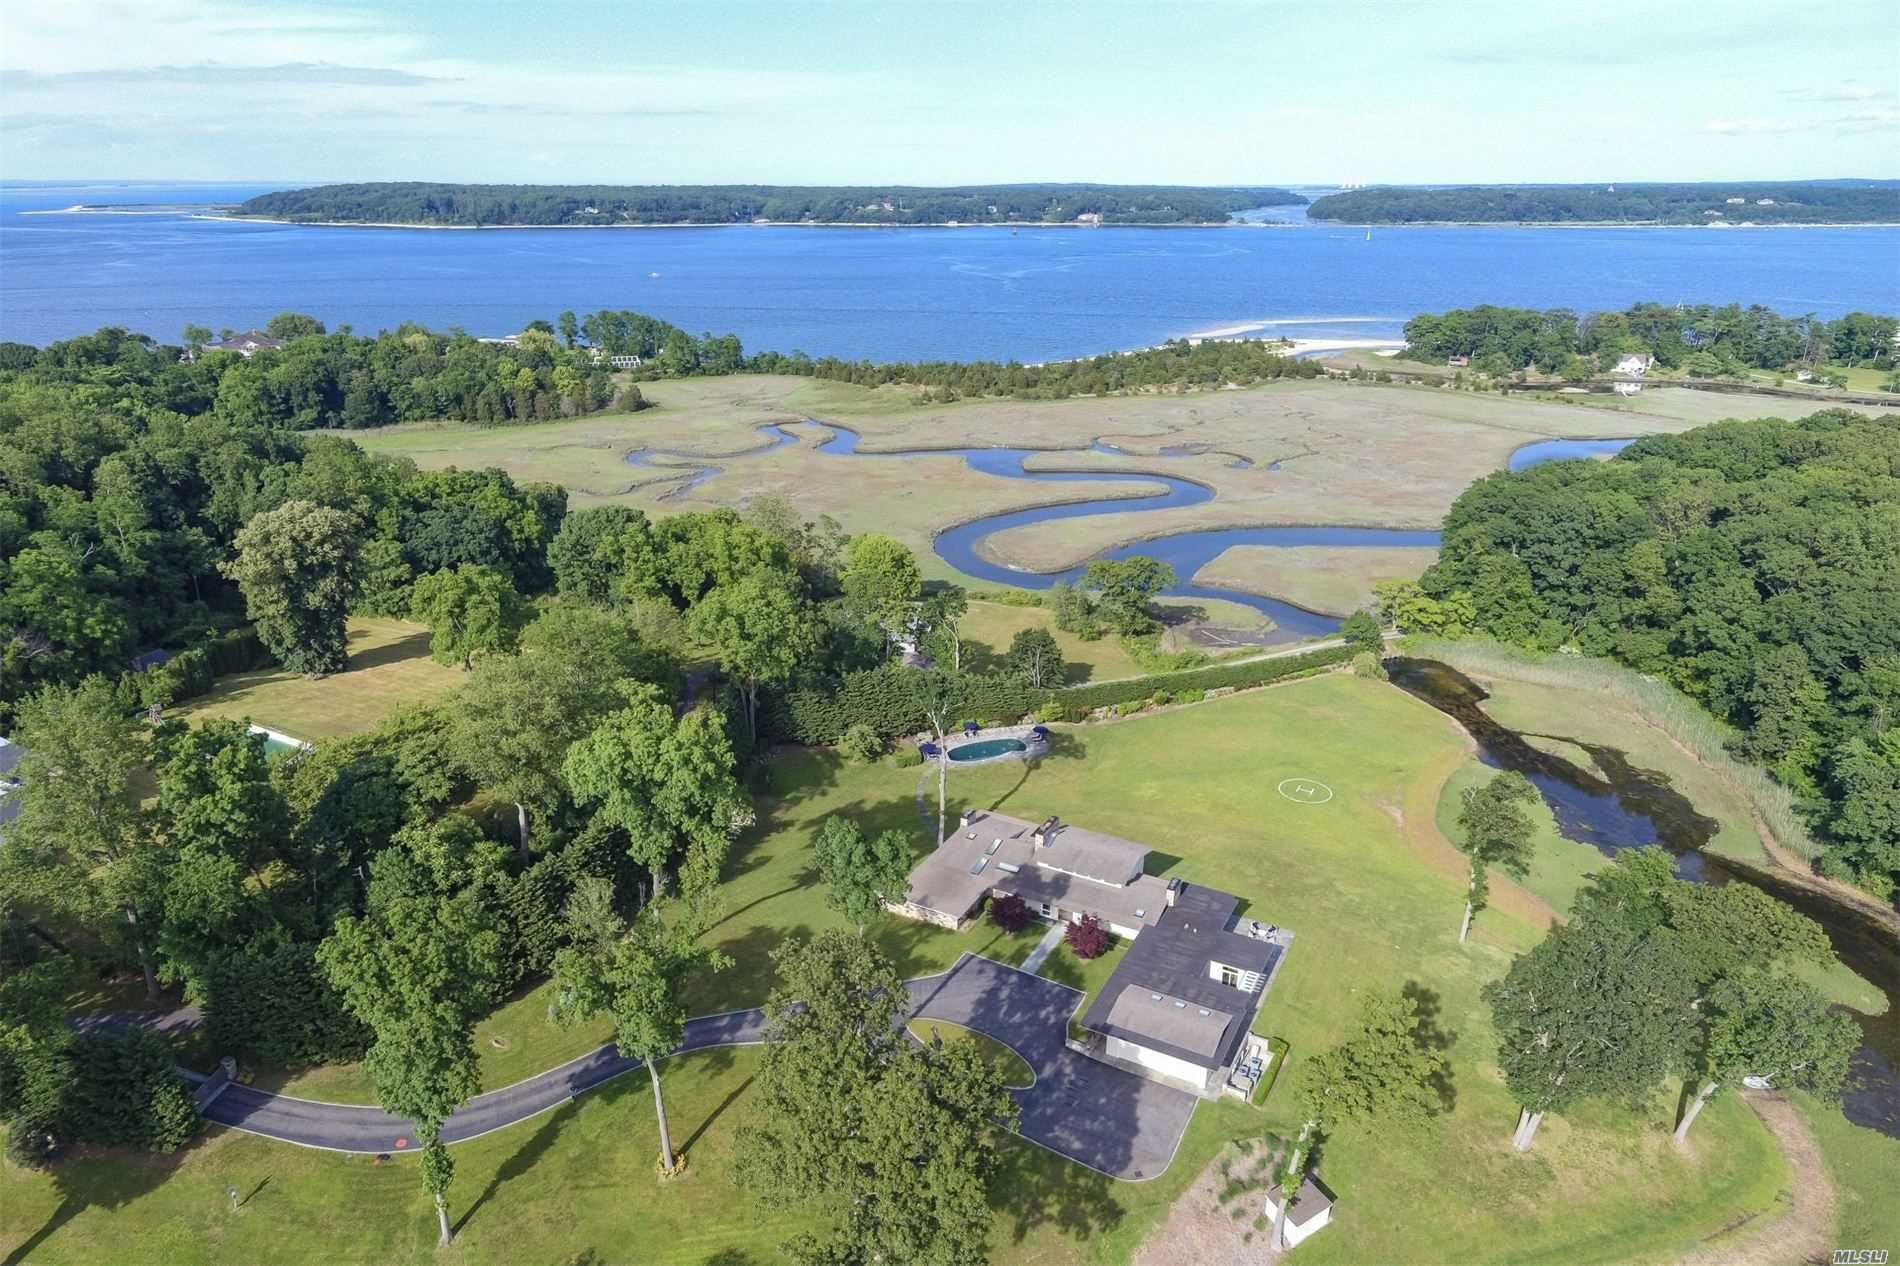 111 Private Road, Oyster Bay, NY 11771 - MLS#: 3224068